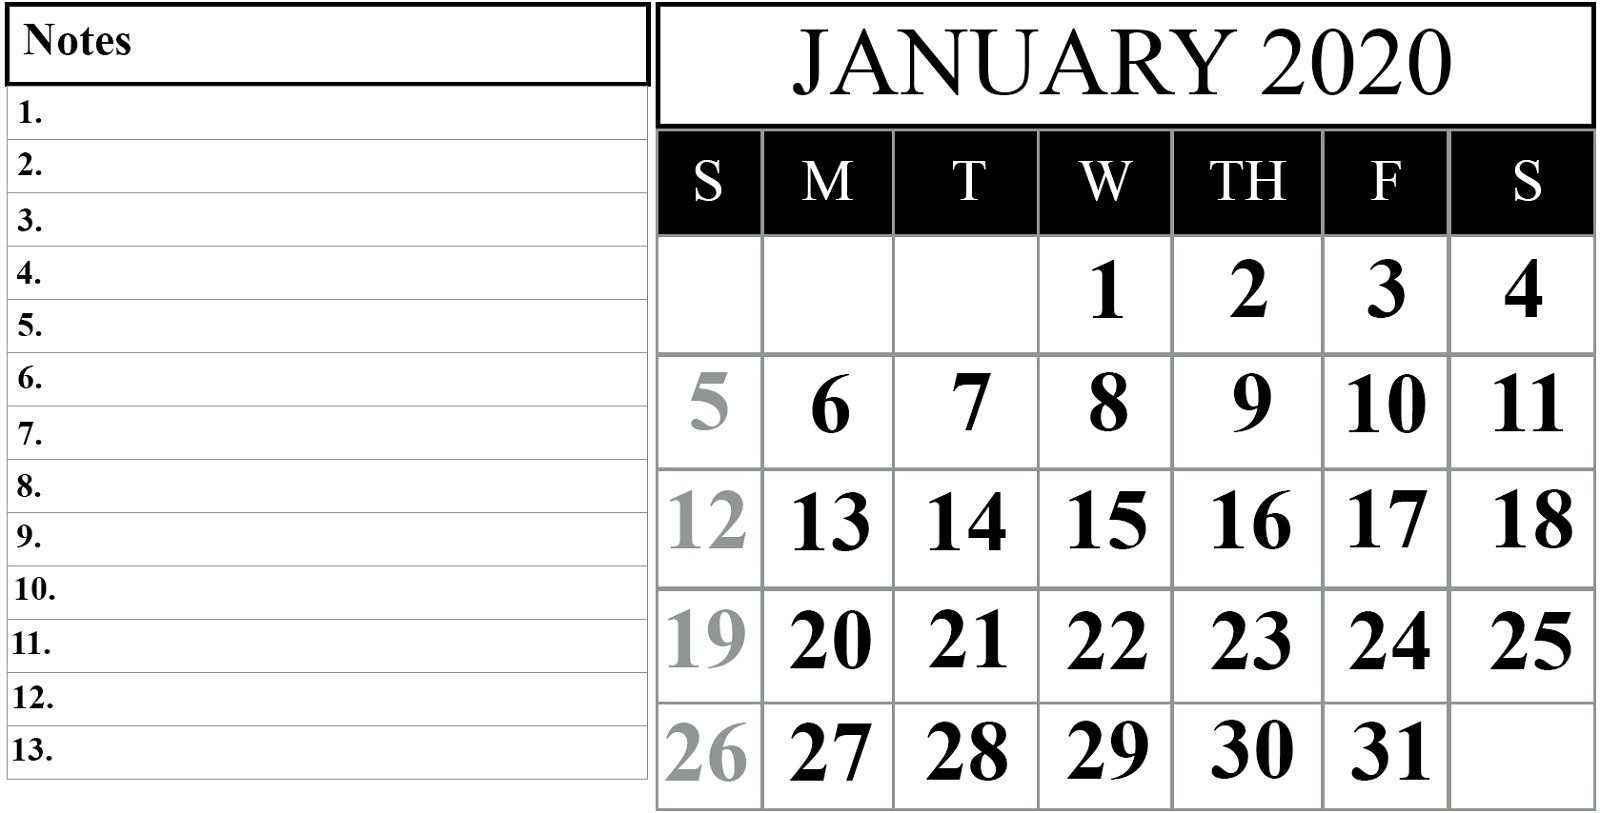 2020 Calendar Template For Kids Big Fonts | Calendar Shelter-January 2020 Calendar Waterproof